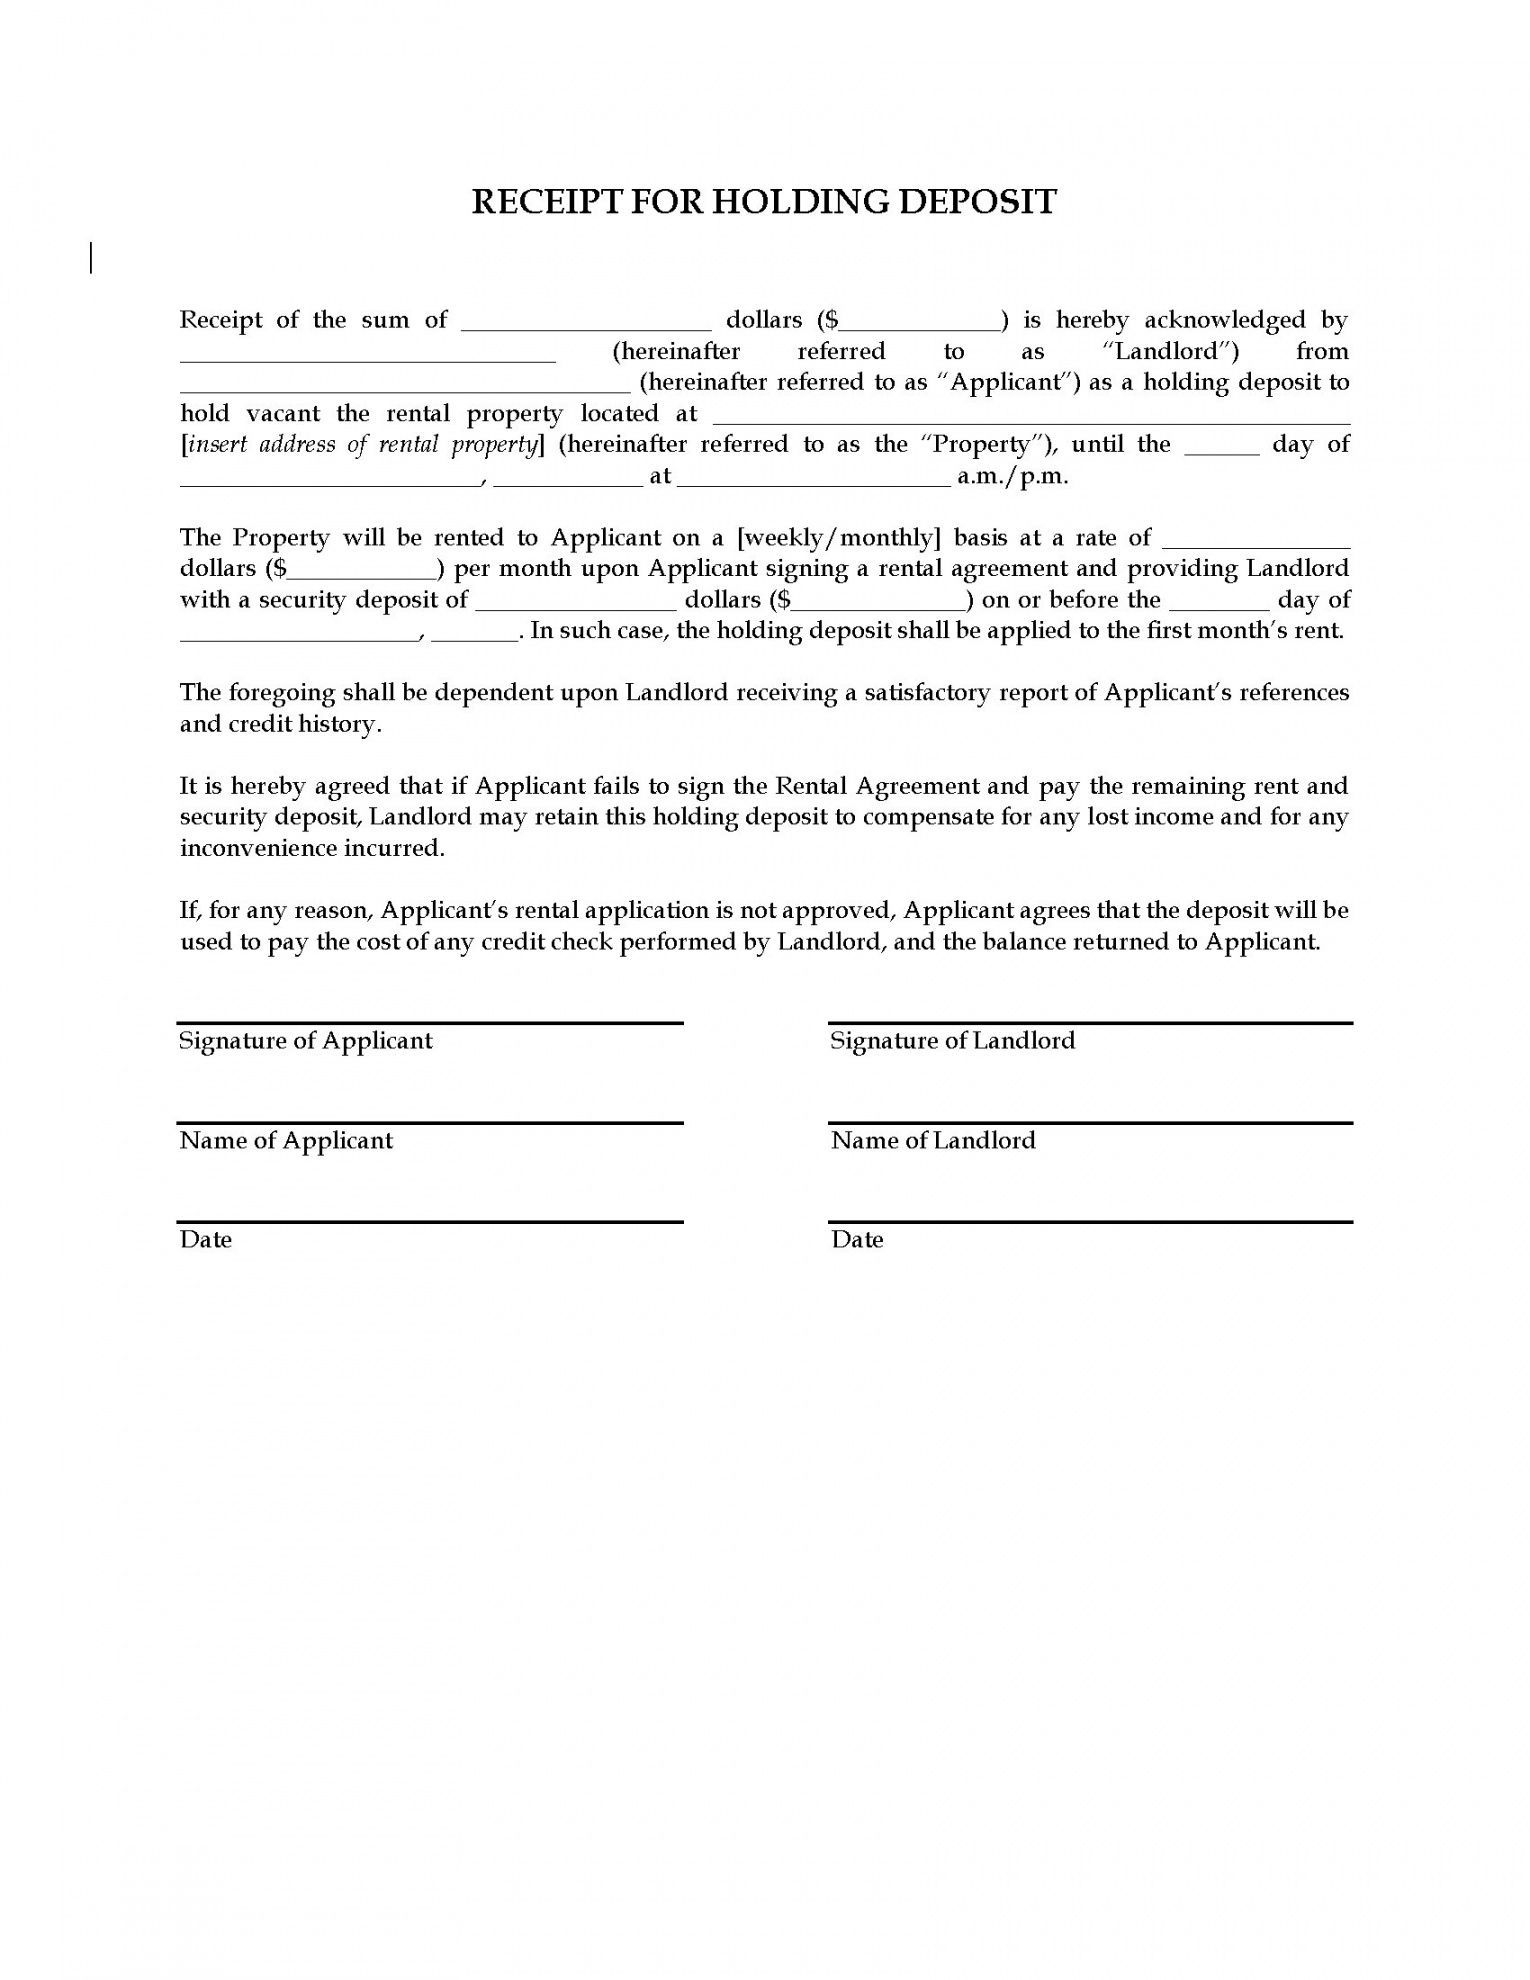 Browse Our Sample Of Holding Deposit Agreement Template For Free Rental Agreement Templates Being A Landlord Deposit